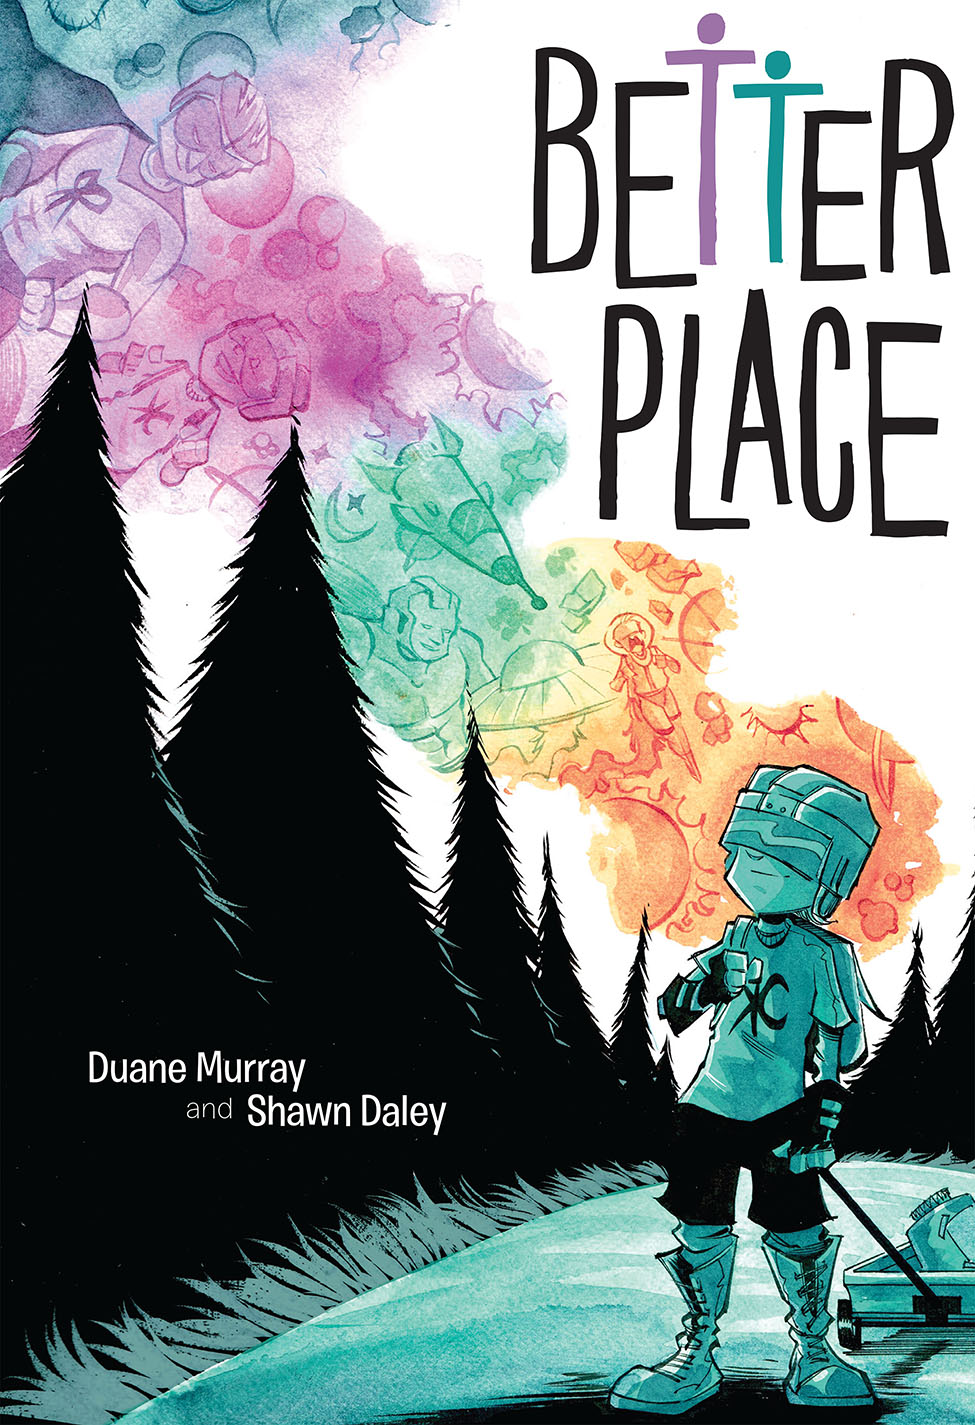 BetterPlace_Cover_300dpi-copy IDW Publishing June 2021 Solicitations